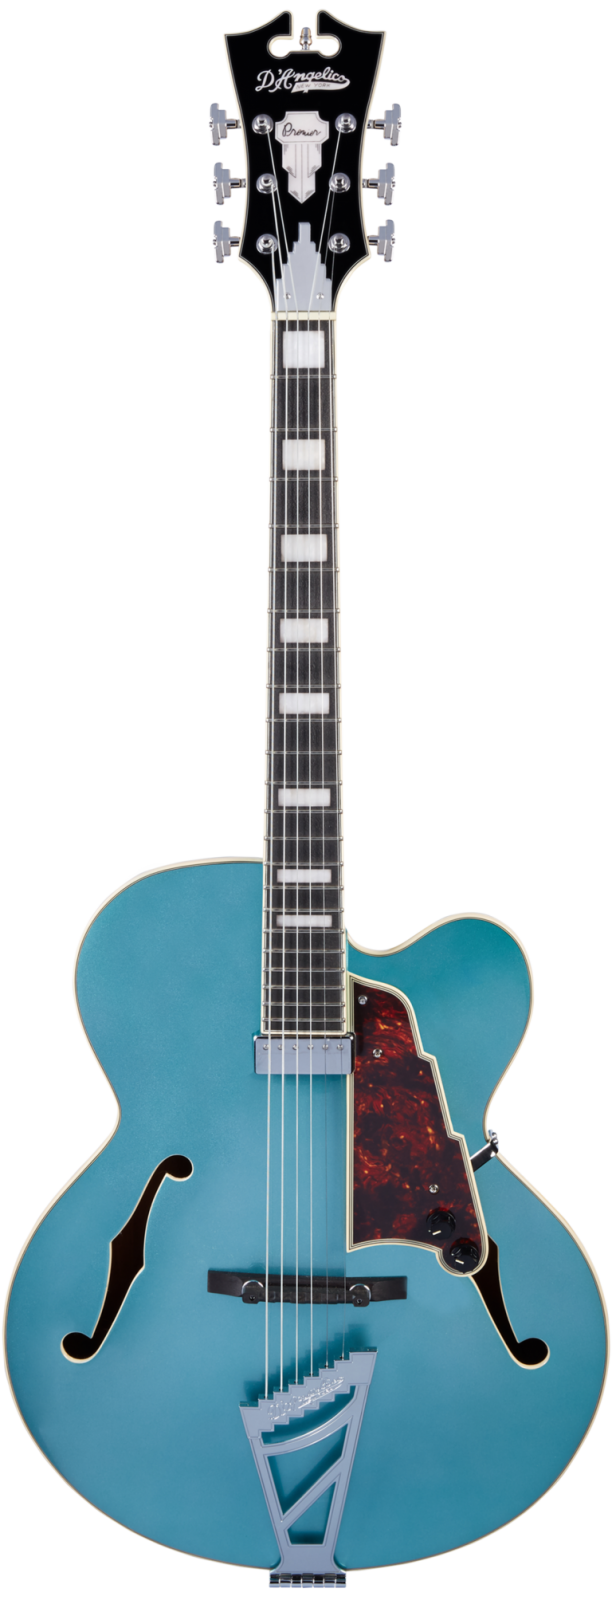 D'Angelico PREMIER EXL-1Turquoise w/gb